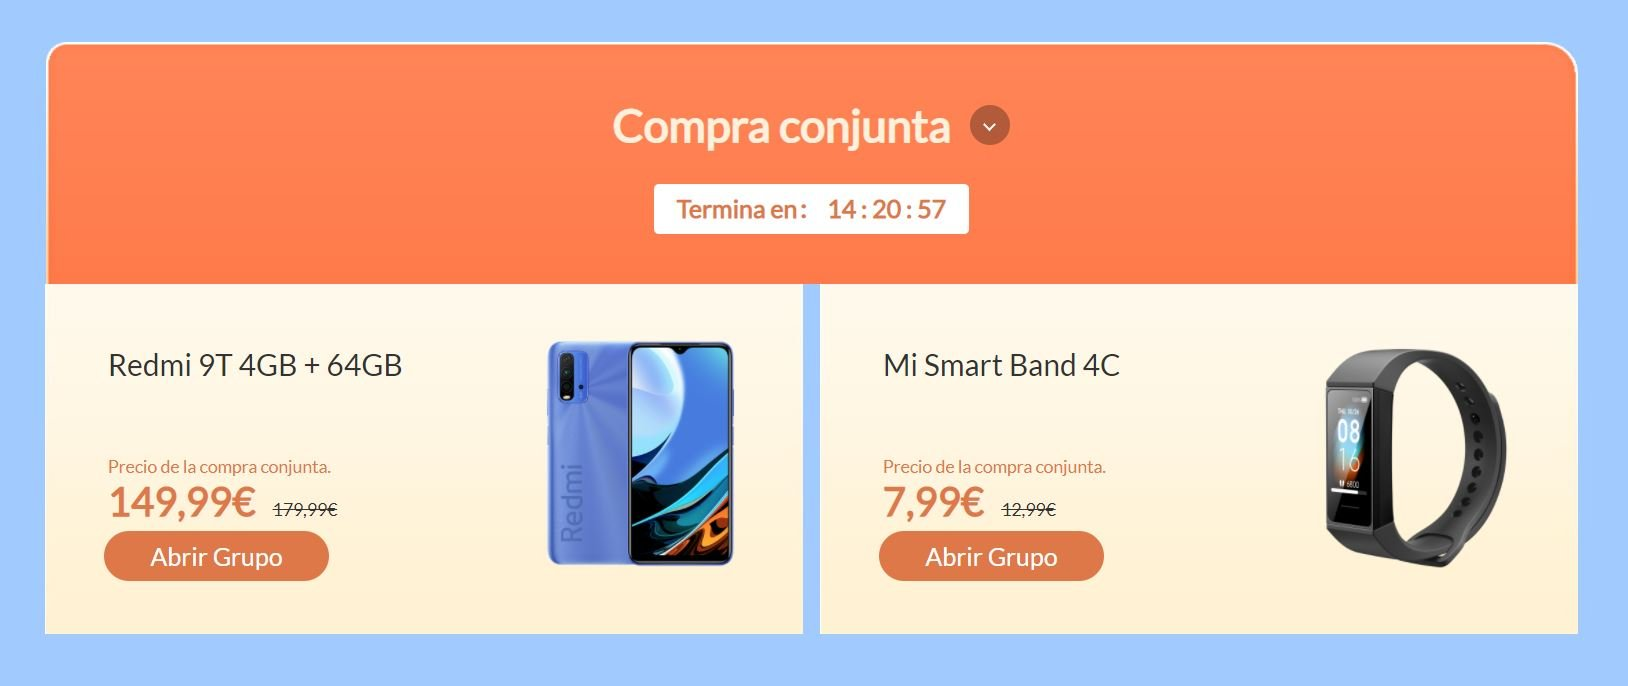 New offers from Xiaomi to continue celebrating the Mi Fan Festival. News Xiaomi Addicts